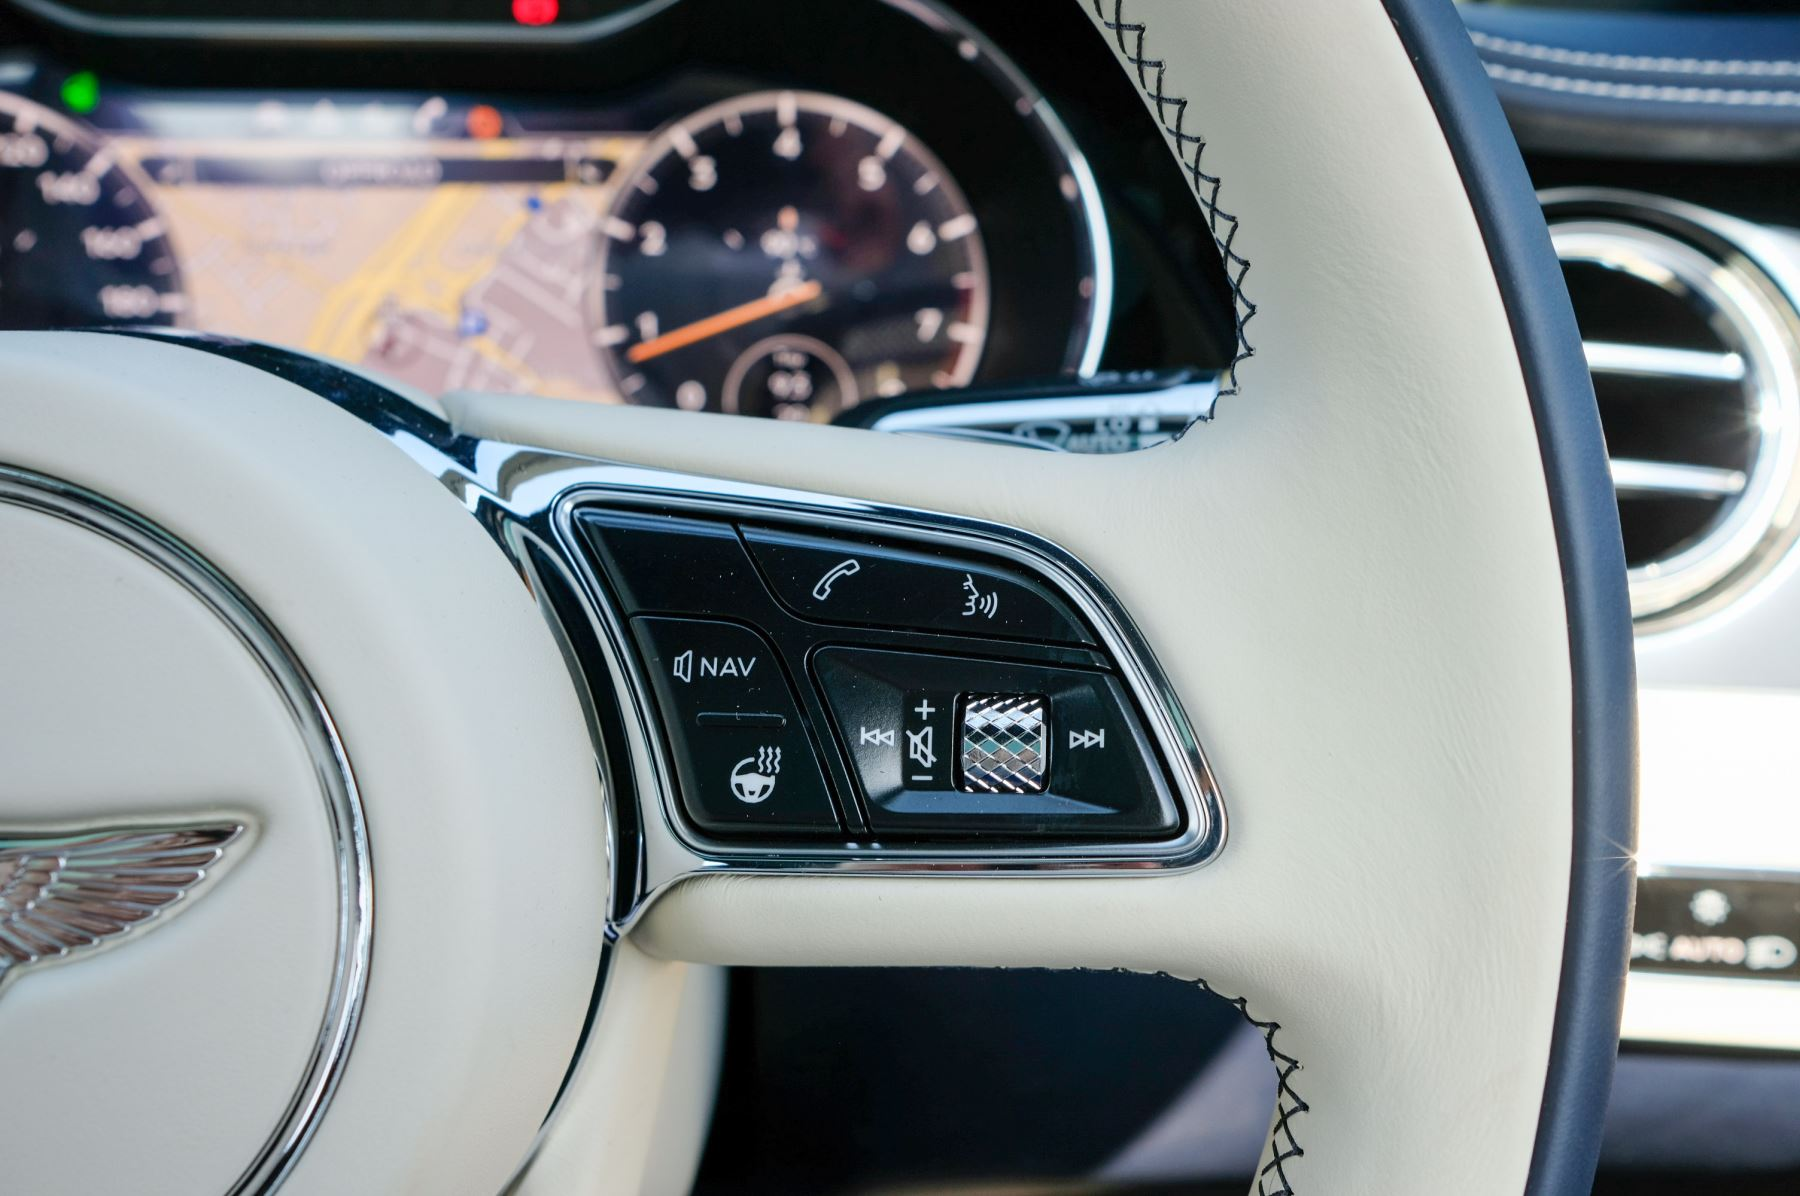 Bentley Continental GT 4.0 V8 Mulliner Edition 2dr Auto - City Specification - Panoramic Glass Roof image 24